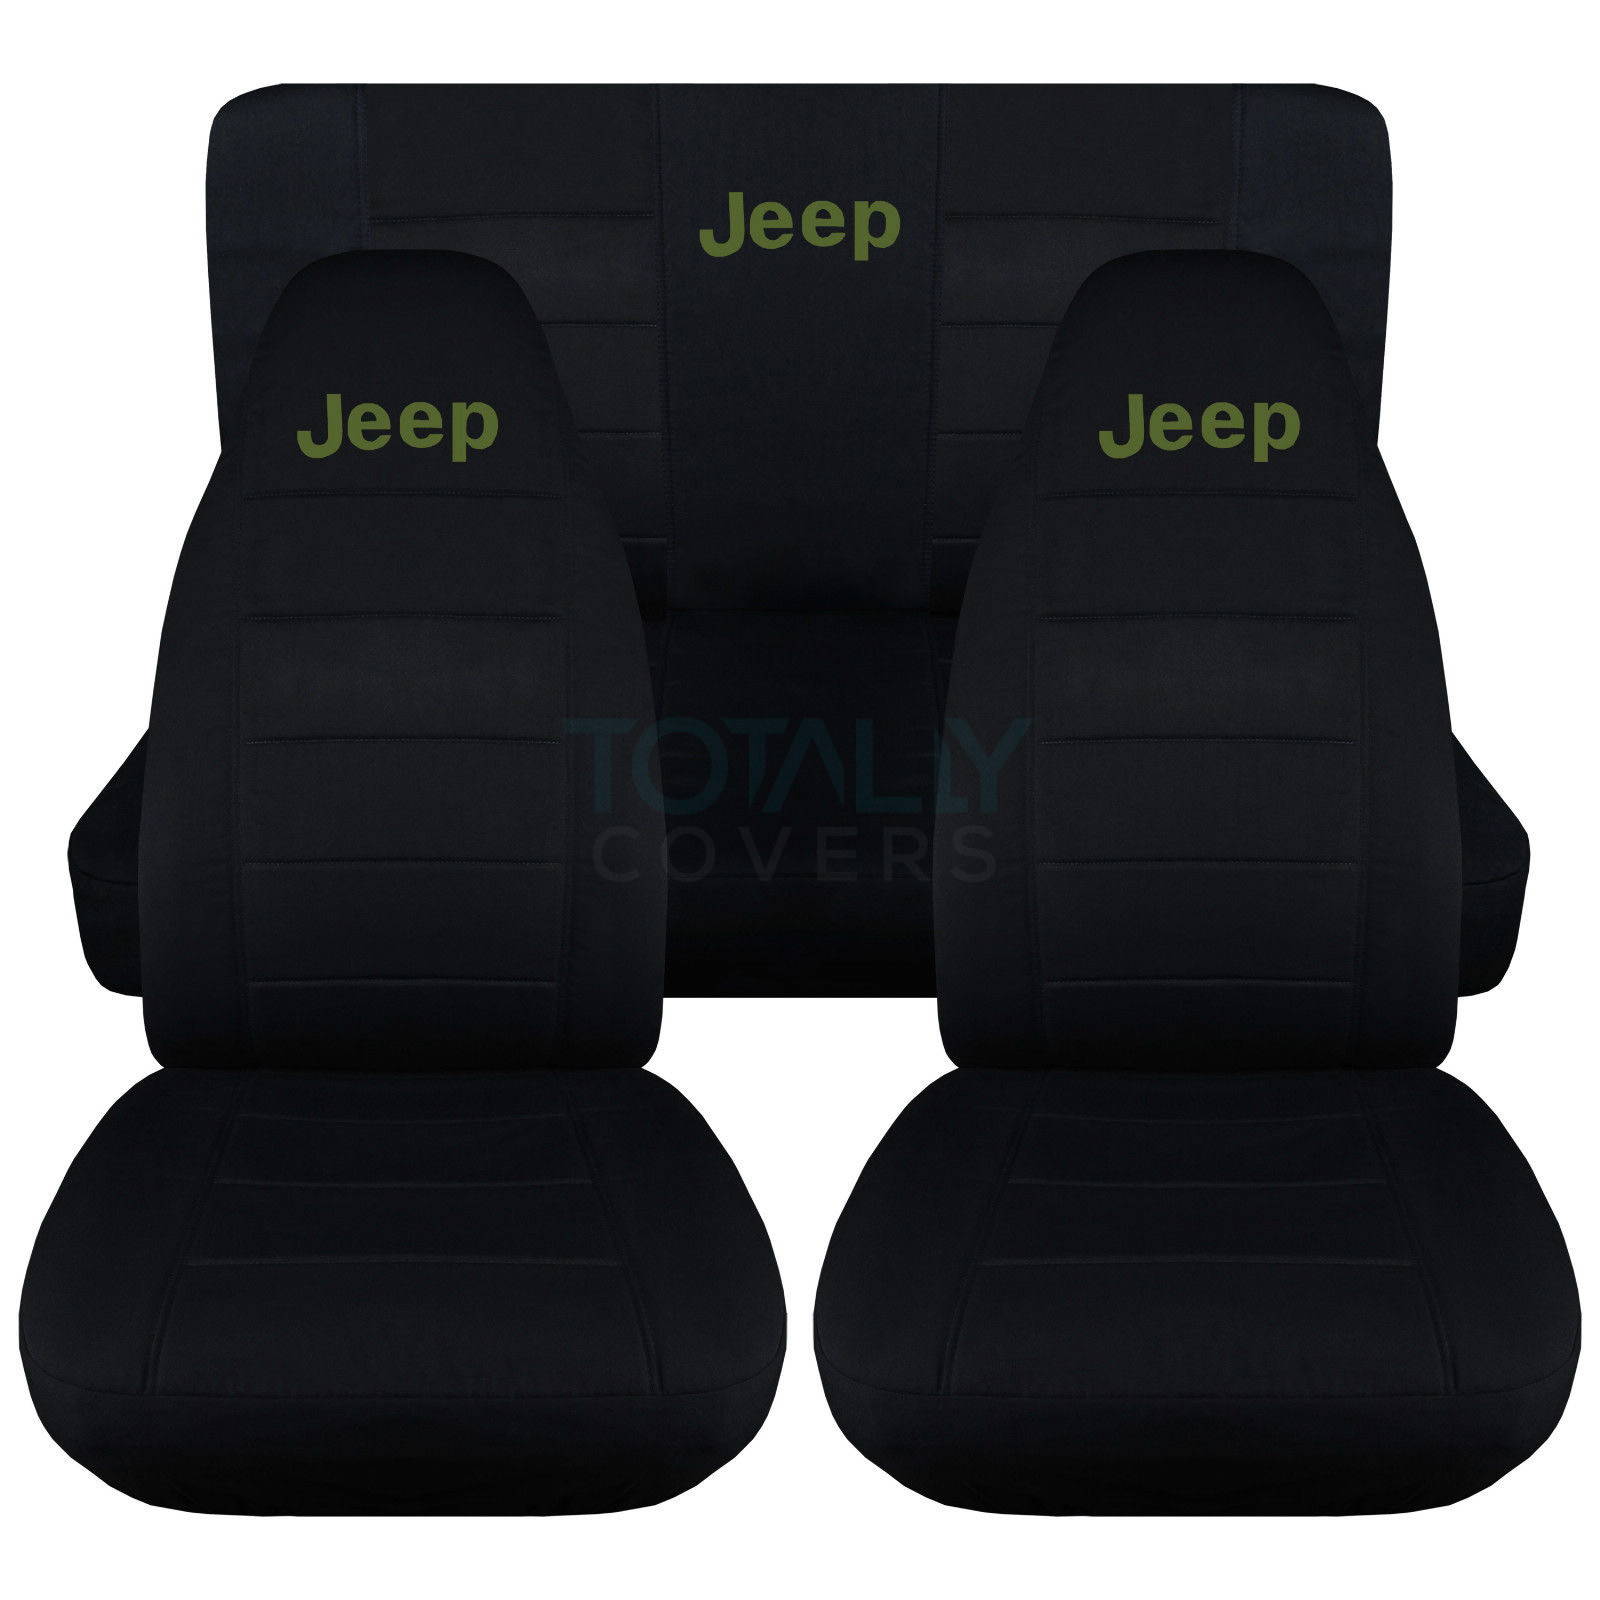 Wrangler Jeep Seat Covers >> Jeep Wrangler YJ/TJ/JK 1987-2017 Black Seat Covers w Logo Front & Rear Full Set | eBay